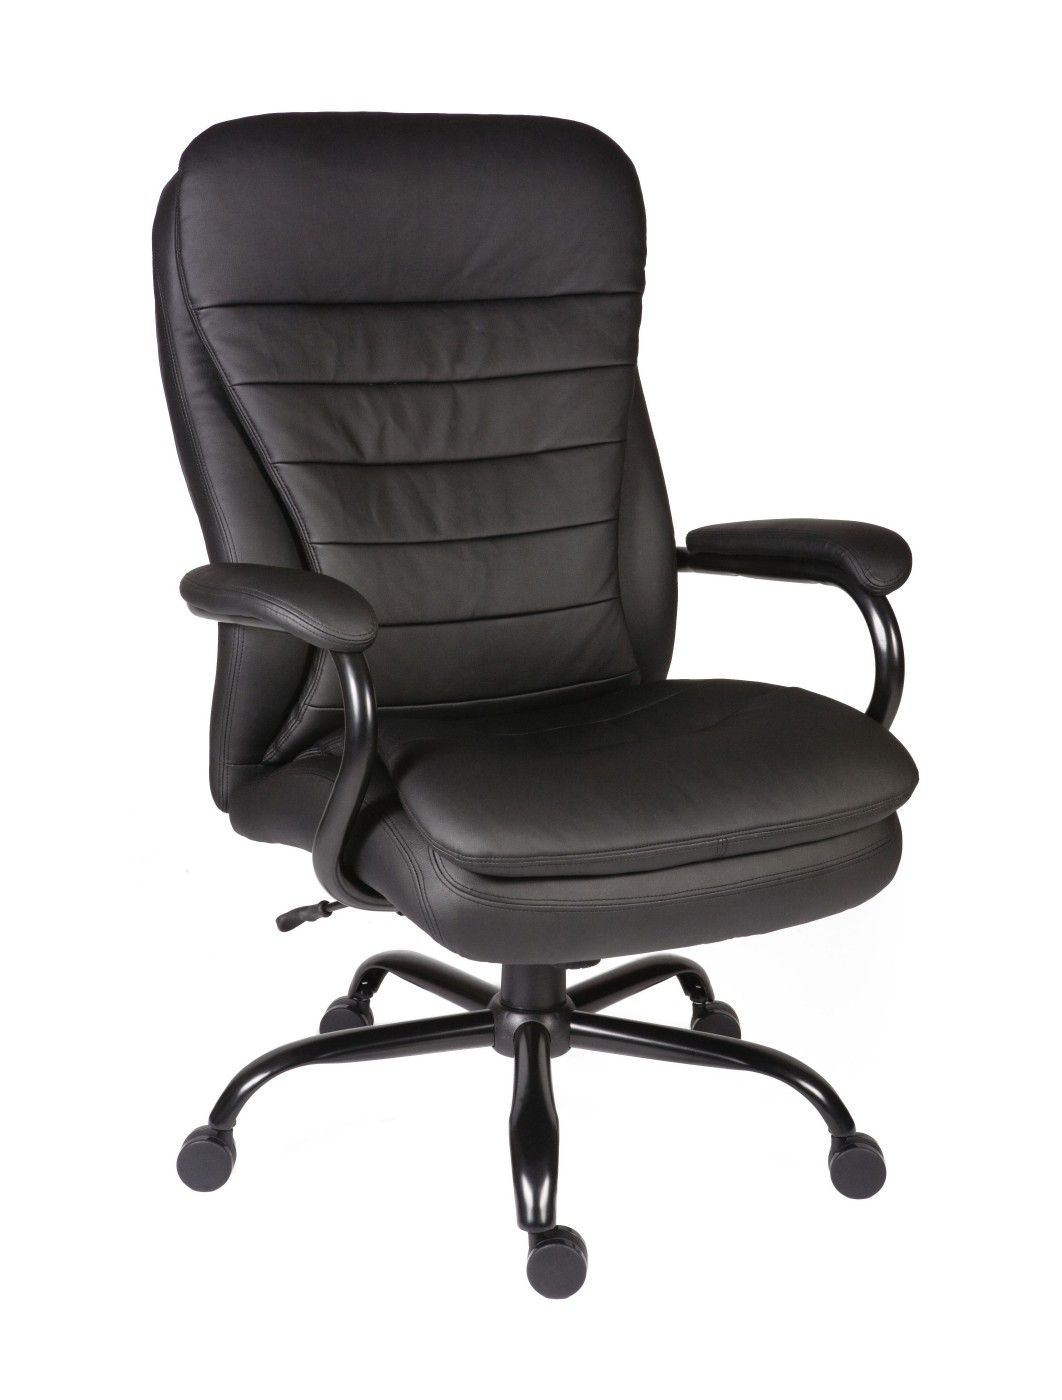 Heavy Duty Office Chair Office Chairs Computer Chairs Goliath B991 121 Office